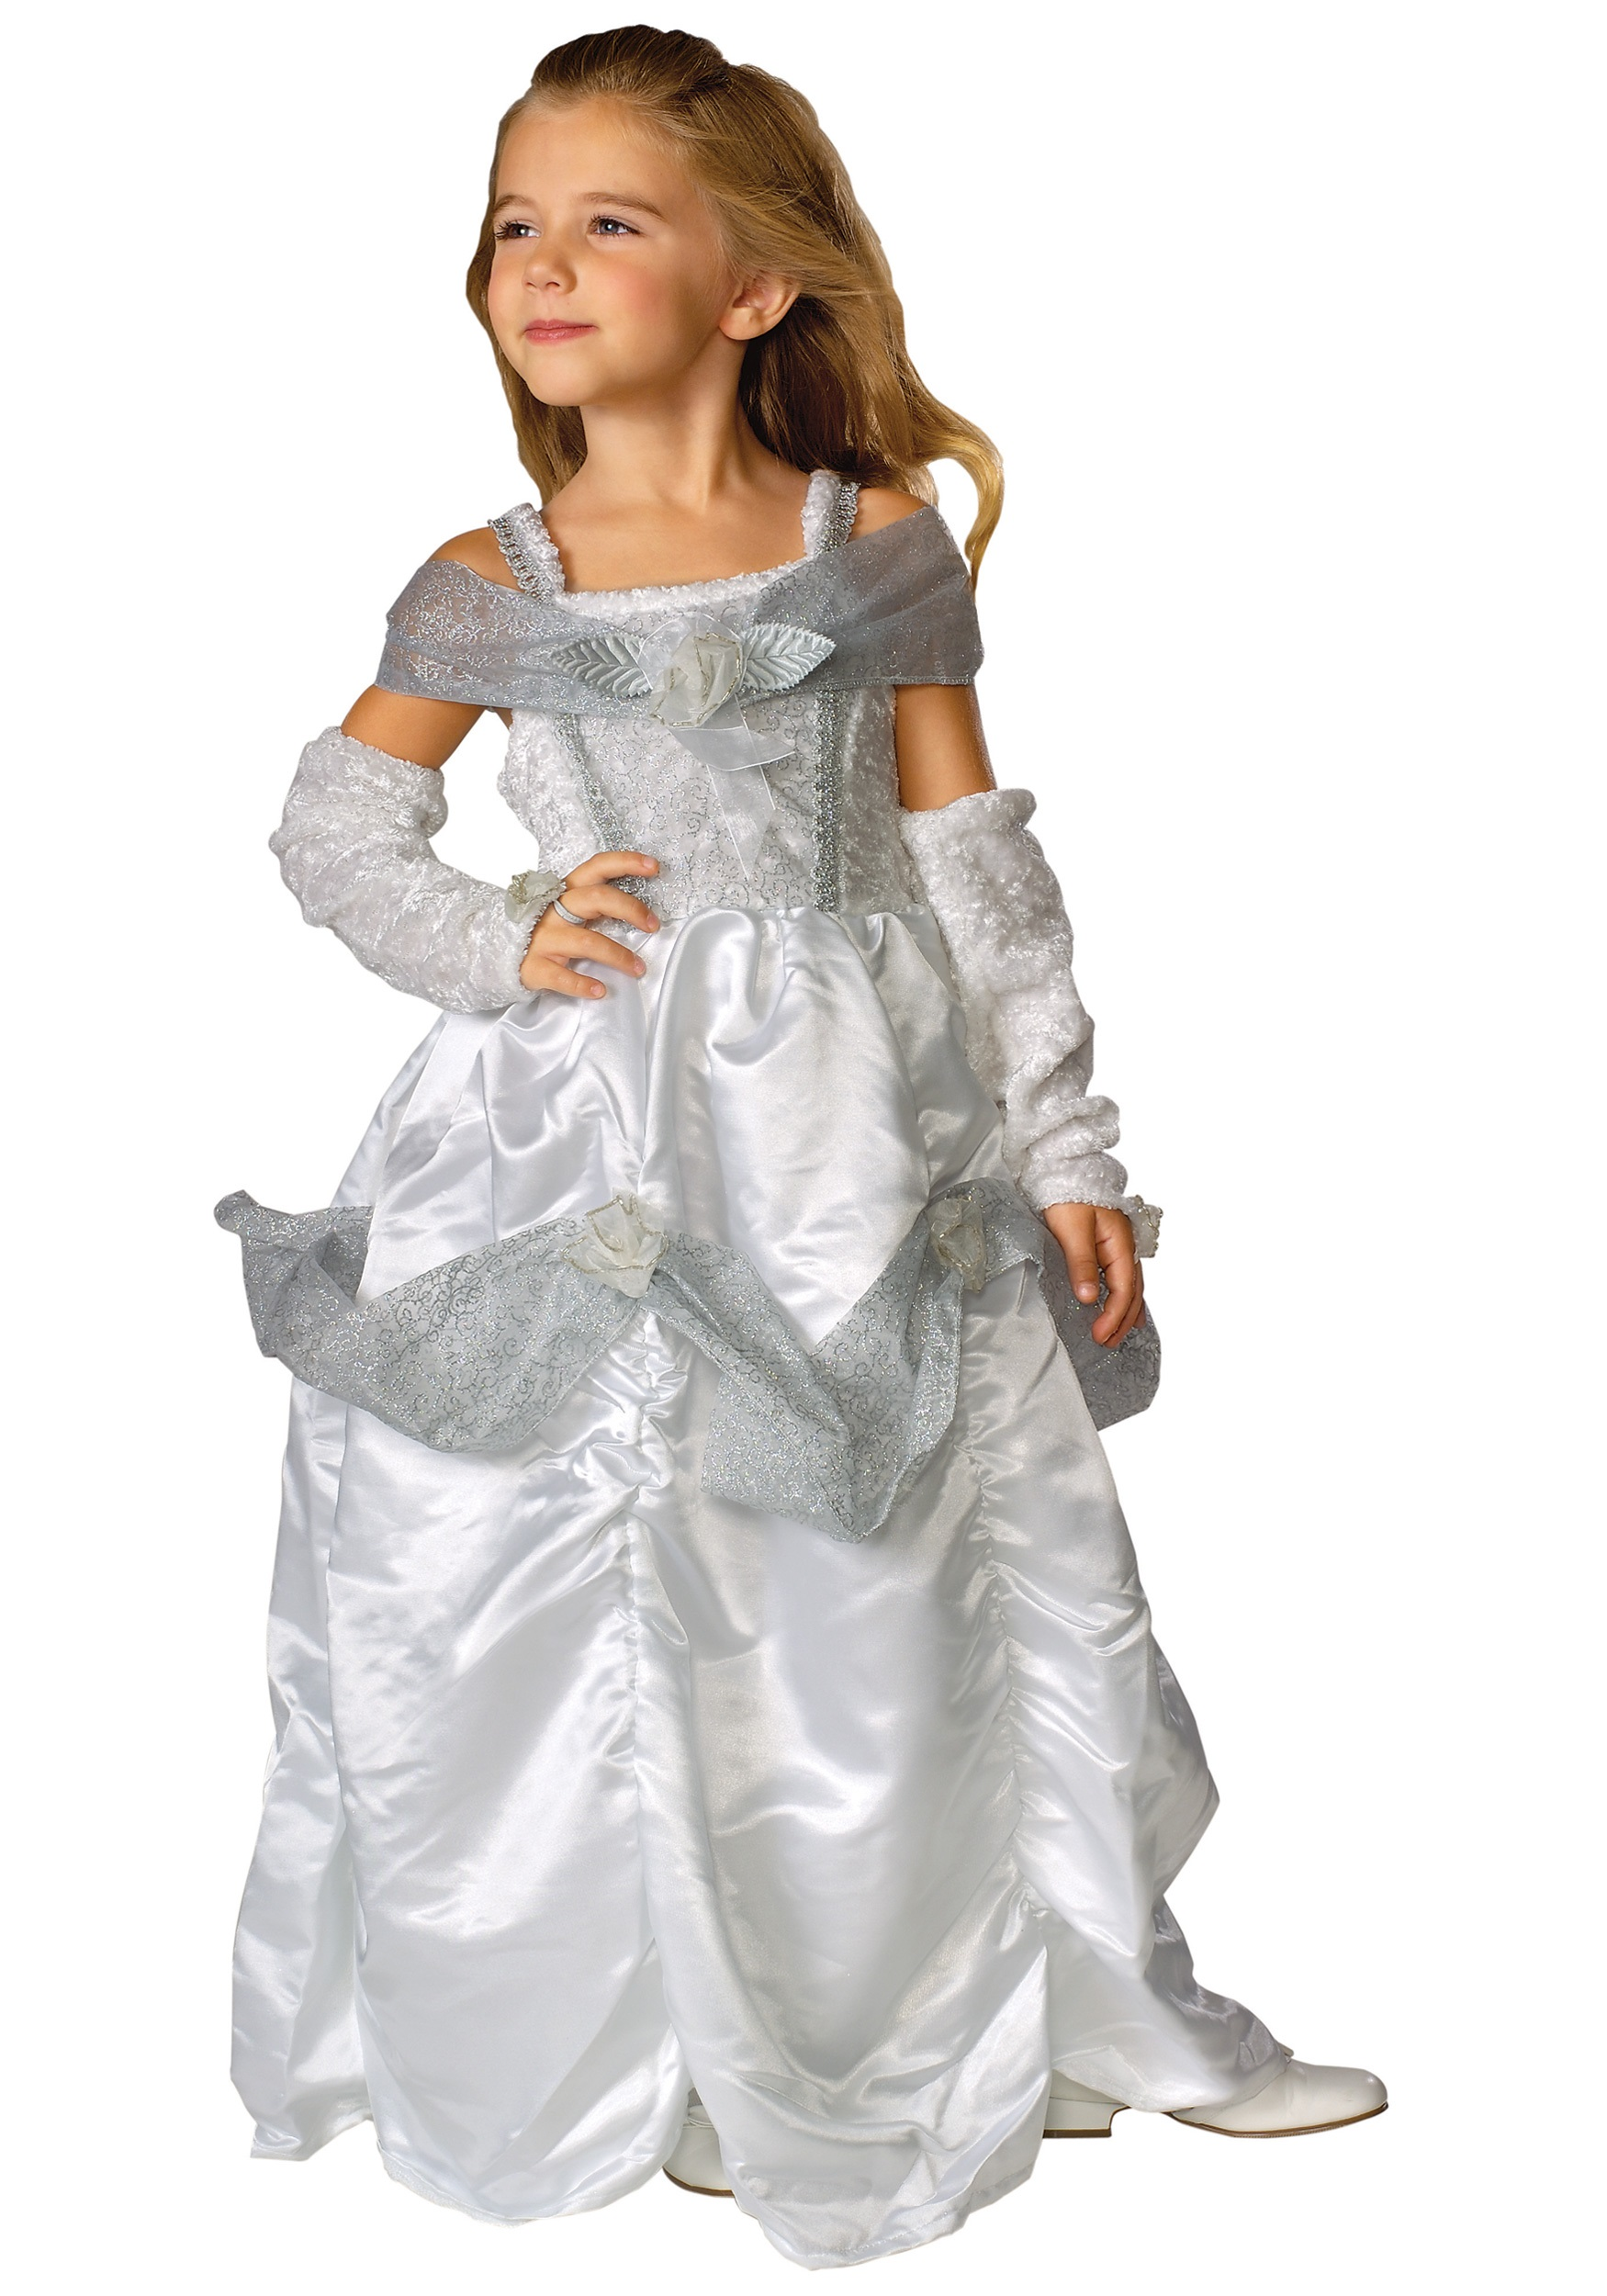 Girls Snow Queen Costume  sc 1 st  Halloween Costumes & Girls Snow Queen Costume - Halloween Costumes